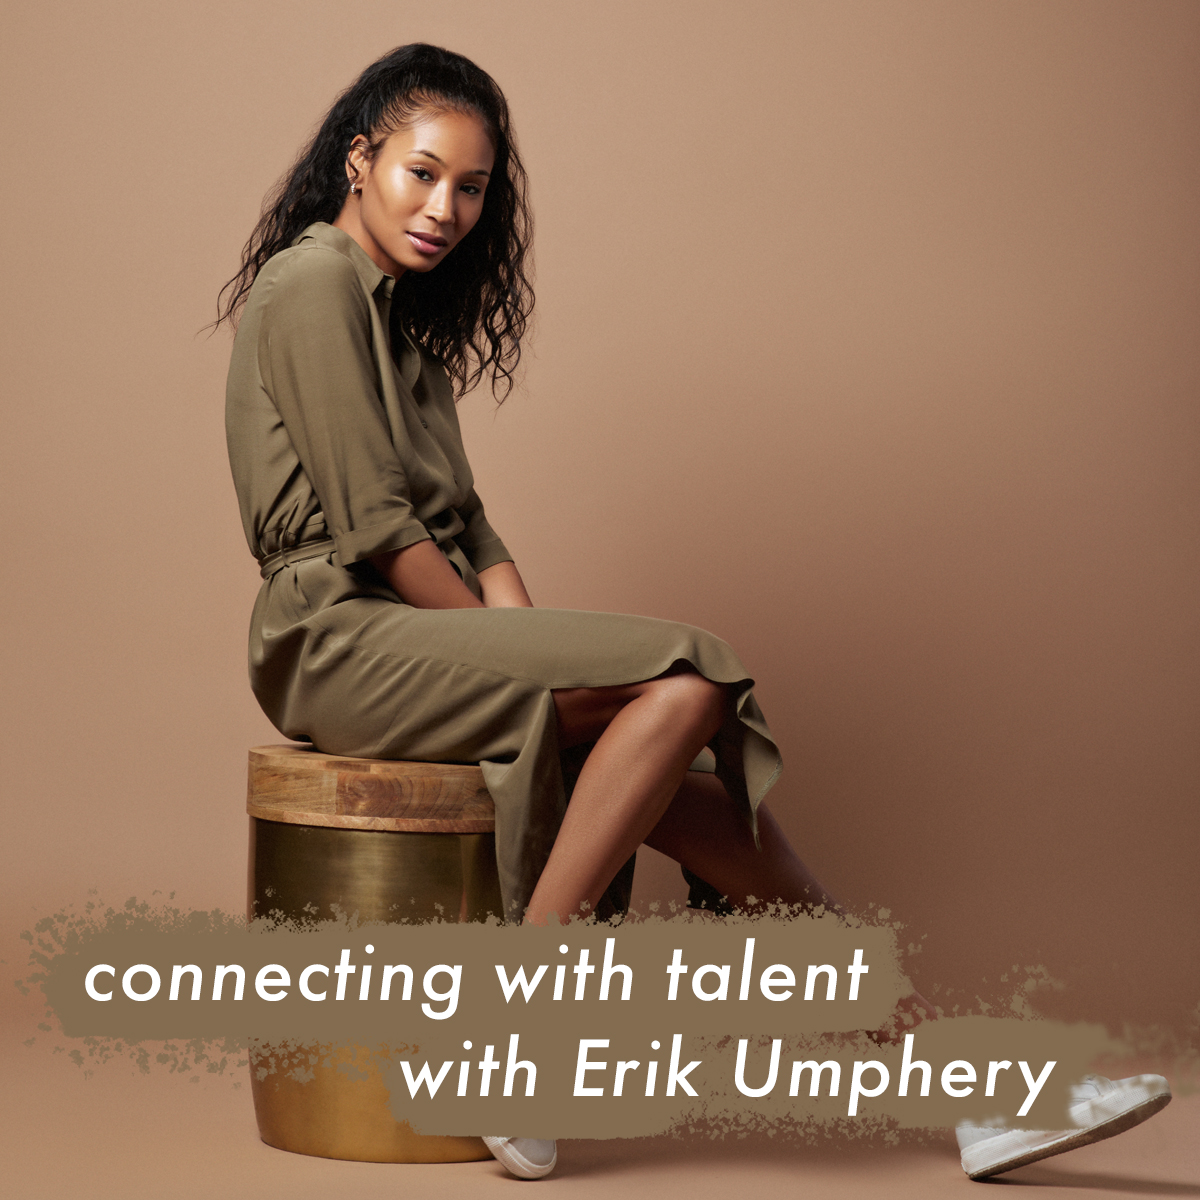 connecting-with-talent-erik-umphery.jpg